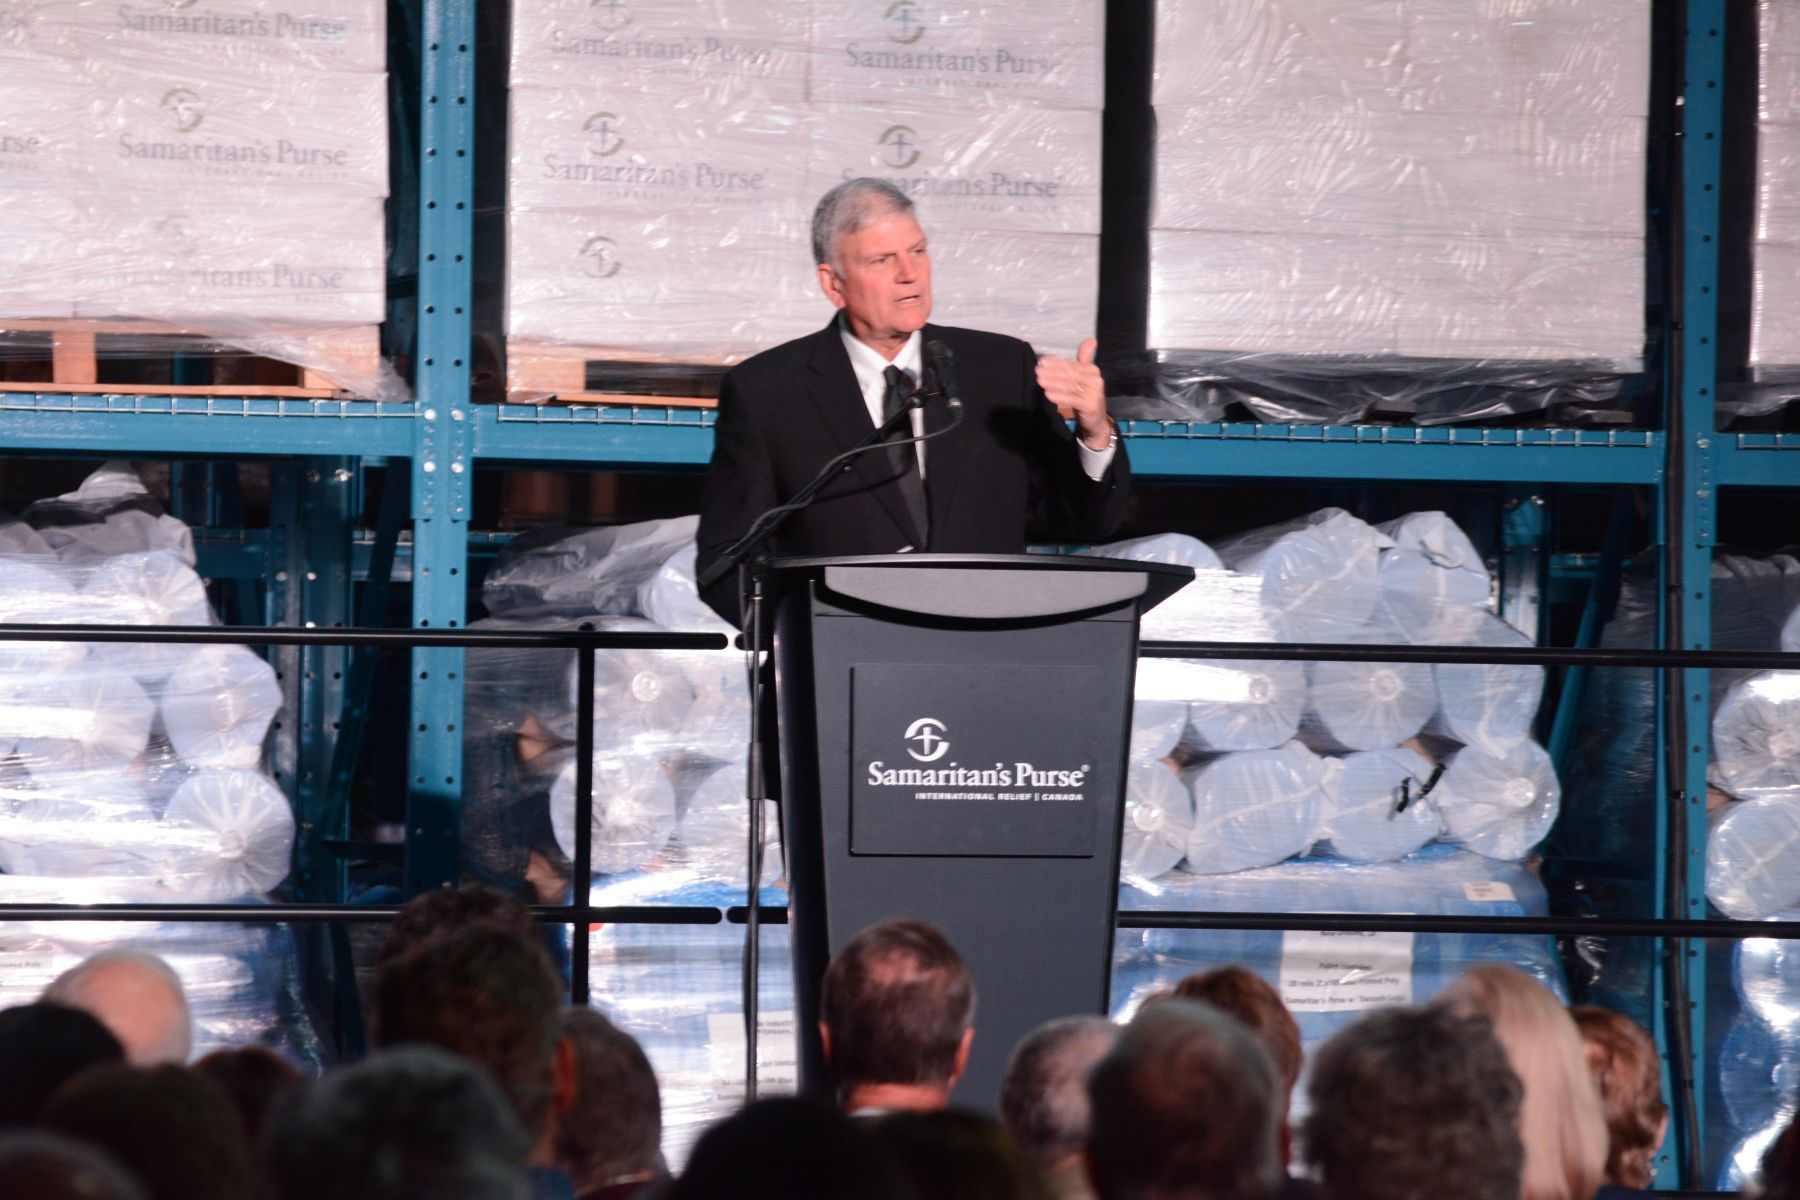 """There's no other facility like this in Canada,"" said Samaritan's Purse President Franklin Graham, who spoke at a dedication event for the warehouse. ""This warehouse enables us to help people (quickly and efficiently) in Jesus' Name."""